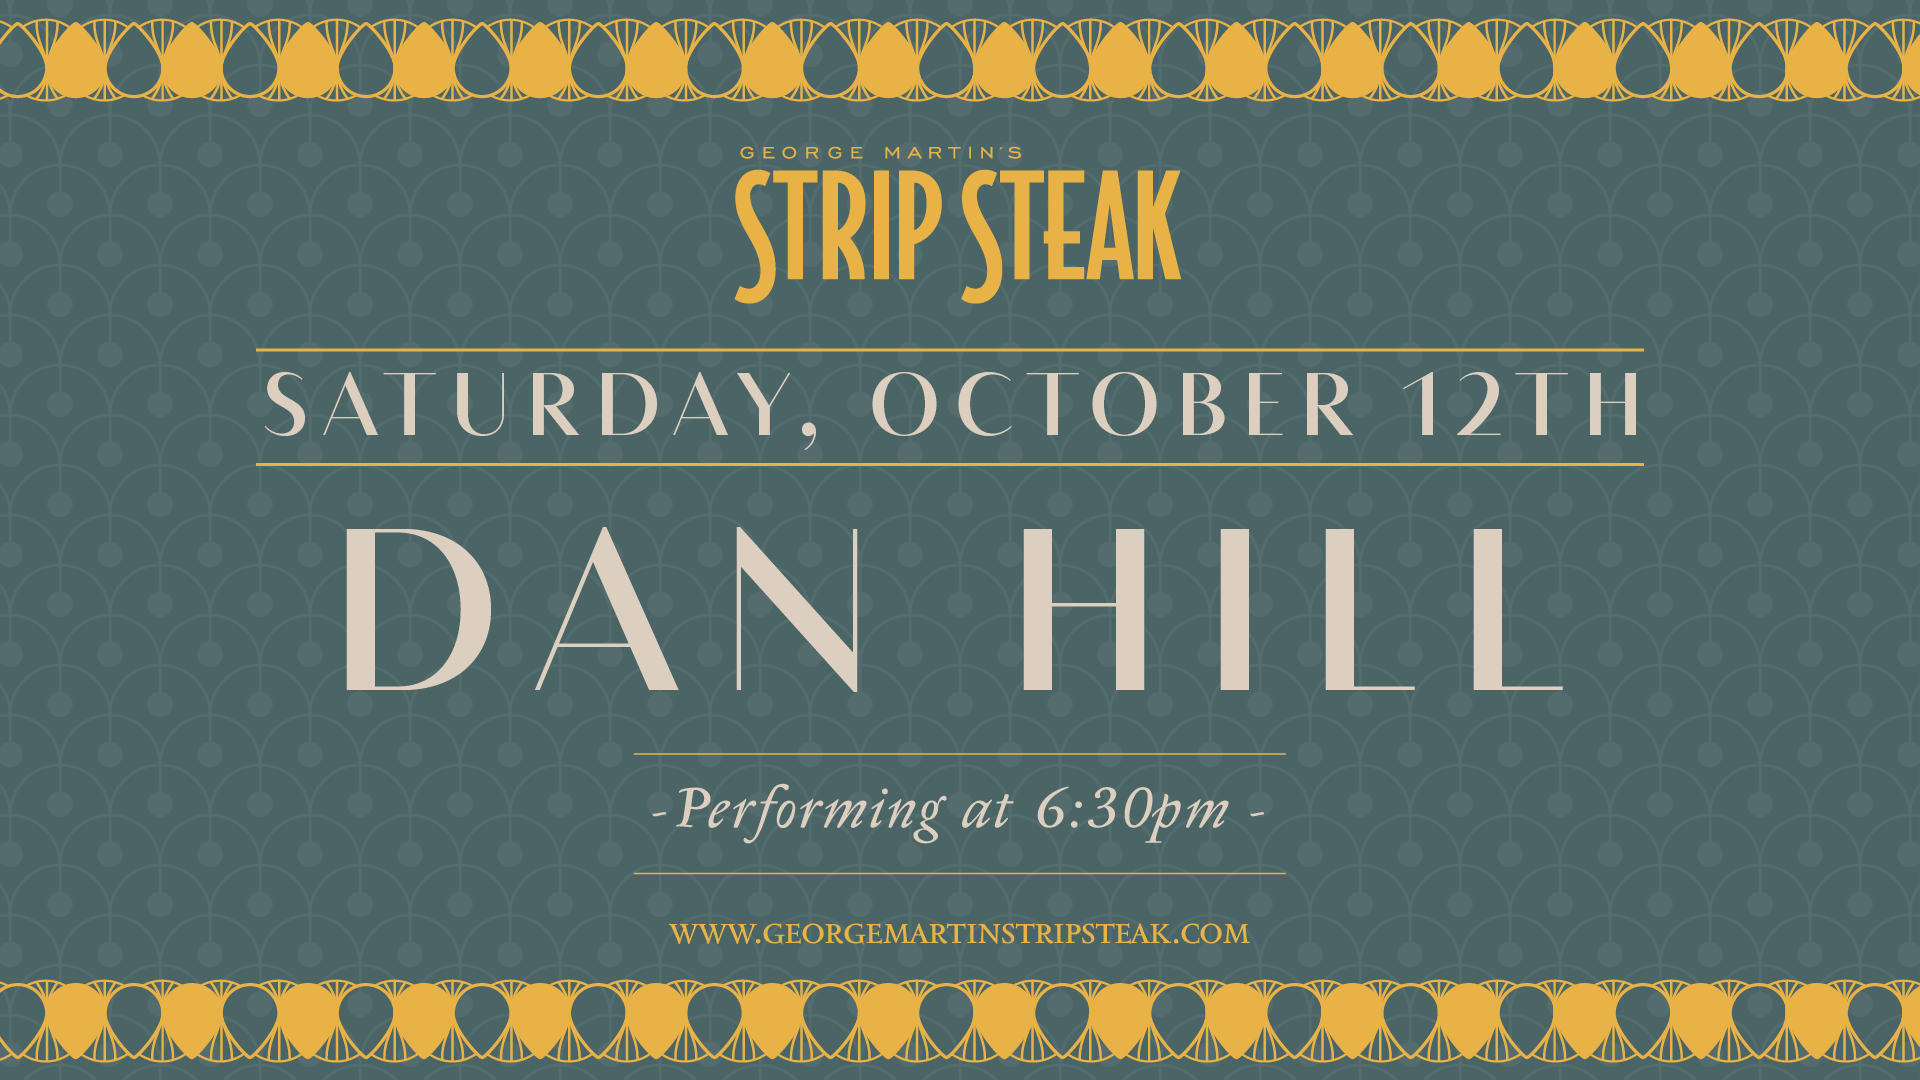 Flyer for live music with Dan Hill on Saturday, October 12th at 6:30pm.